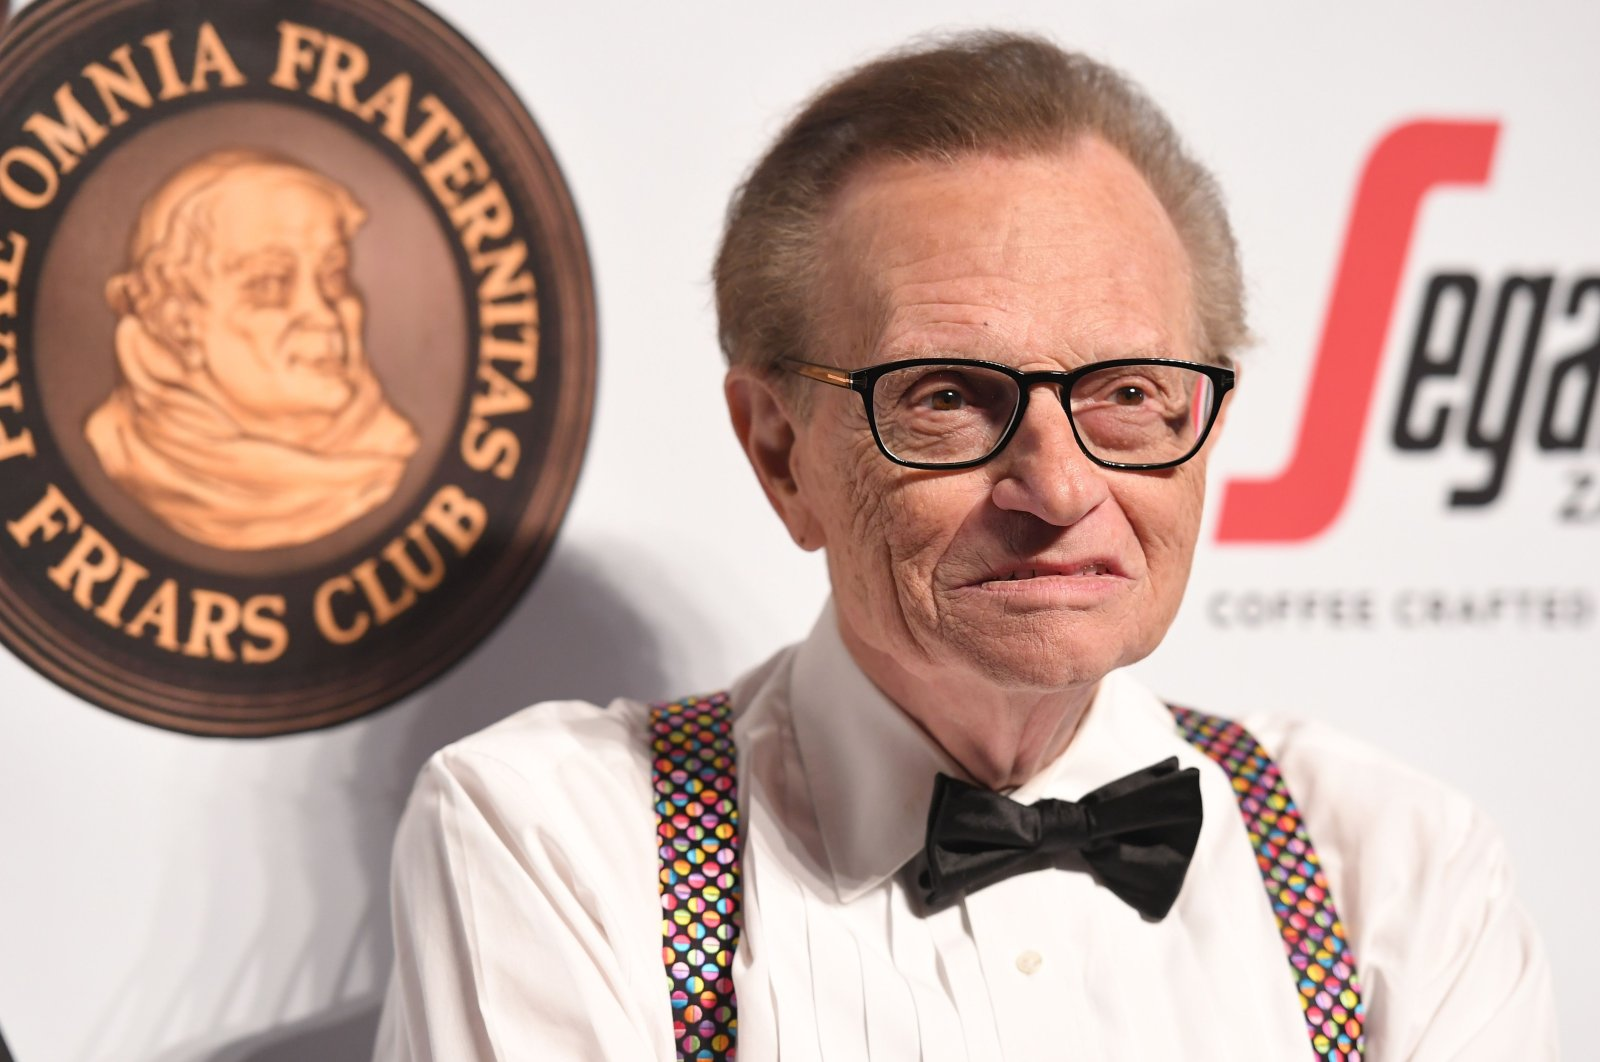 Larry King attends the Friars Club's honoring of Martin Scorsese at Cipriani Wall Street in New York City, U.S., Sept. 21, 2016 (AFP Photo)